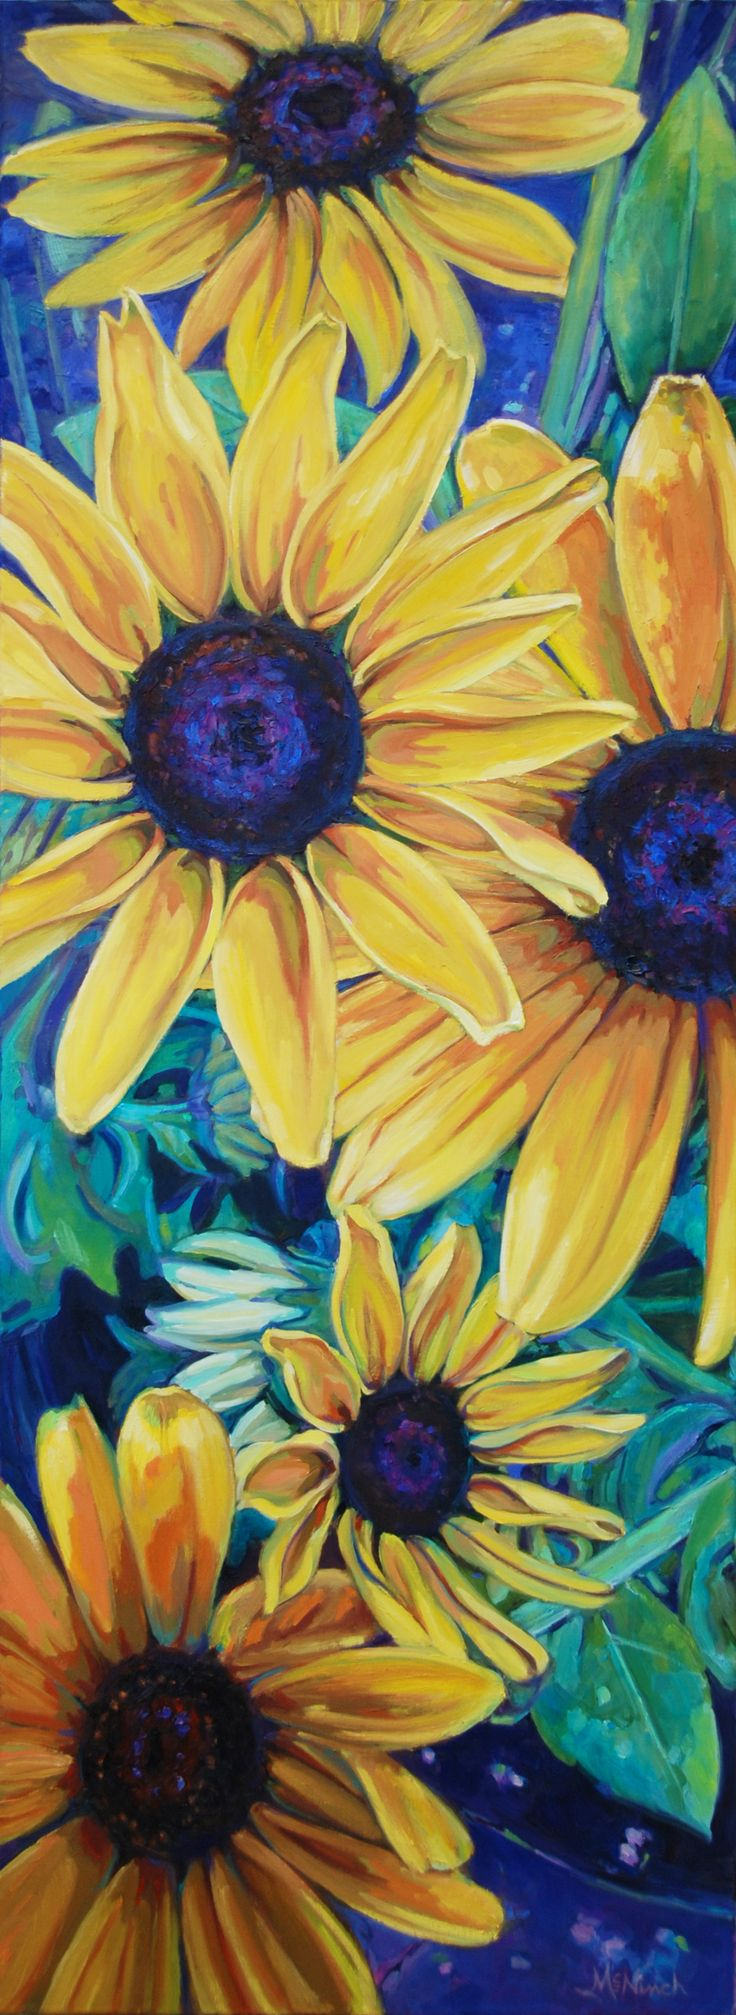 "My beautiful niece, Kathleen McNinch, took a series of photos of Black-eyed Suzies which resulted in this painting.  It's a big one, 48x18, titled ""Bloom Where You are Planted.""  http://www.michelmcninch.com"